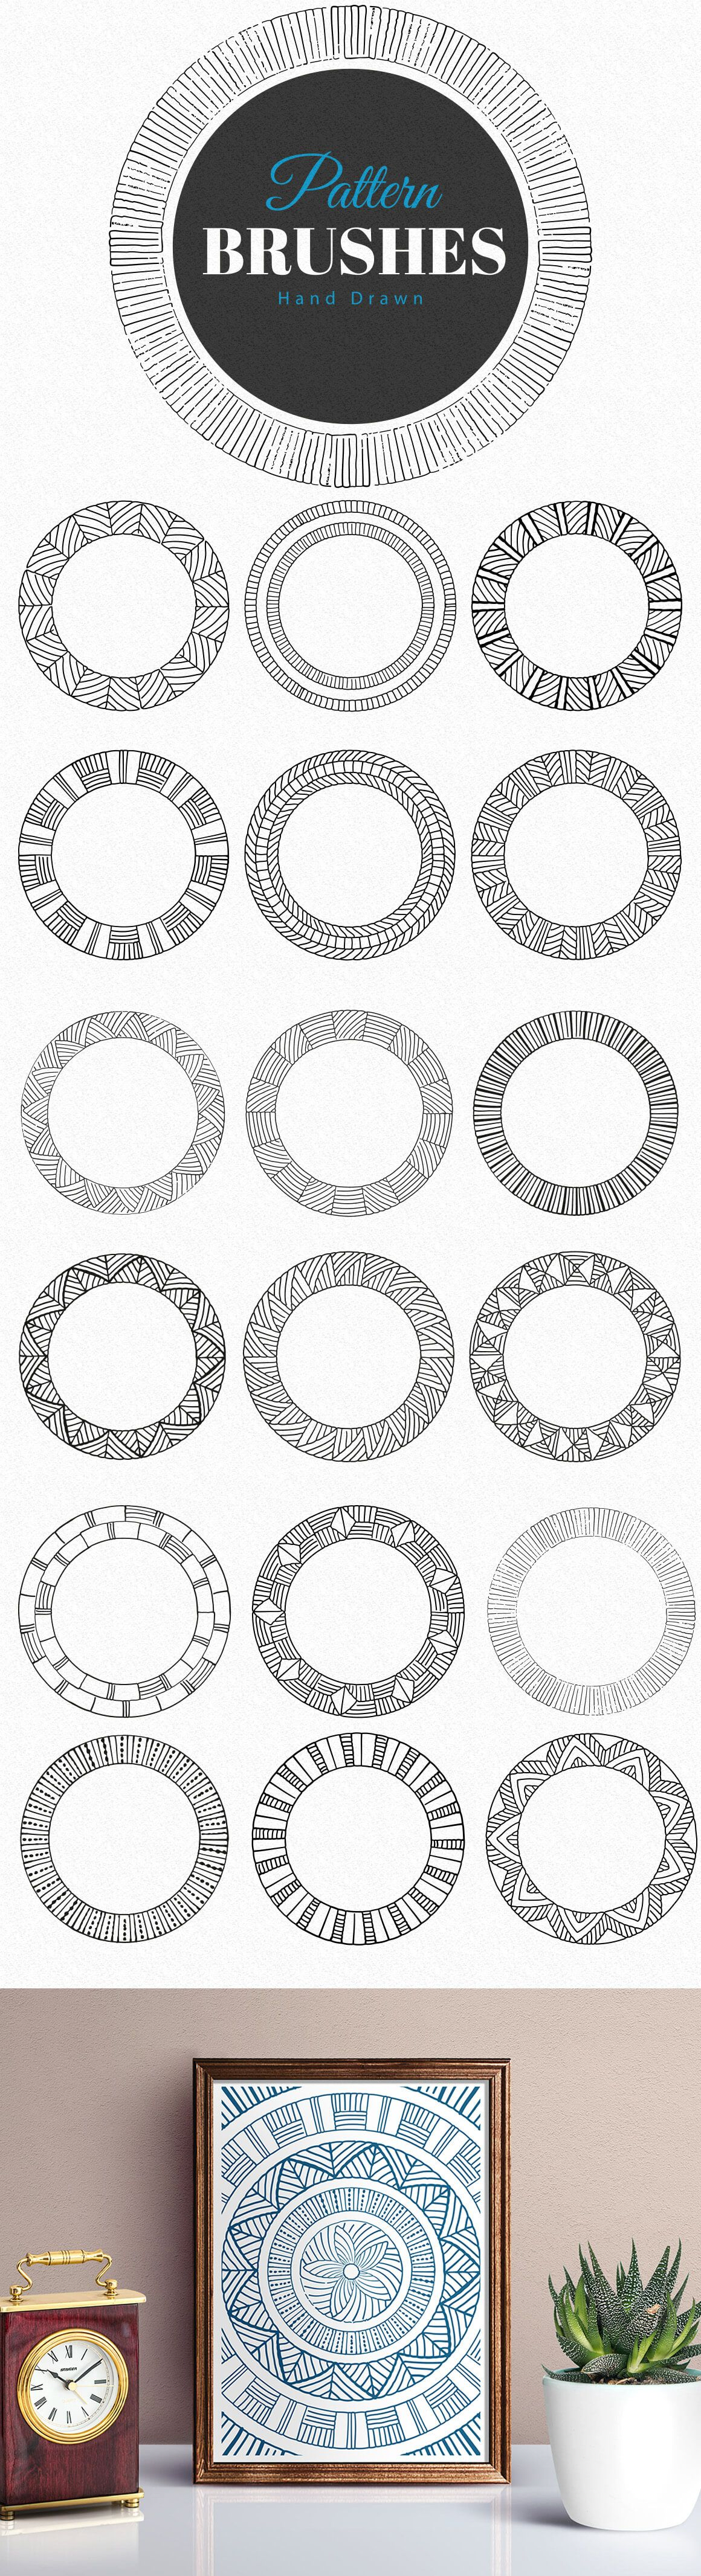 Hand Drawn Pattern Brushes for Adobe Illustrator. Logo